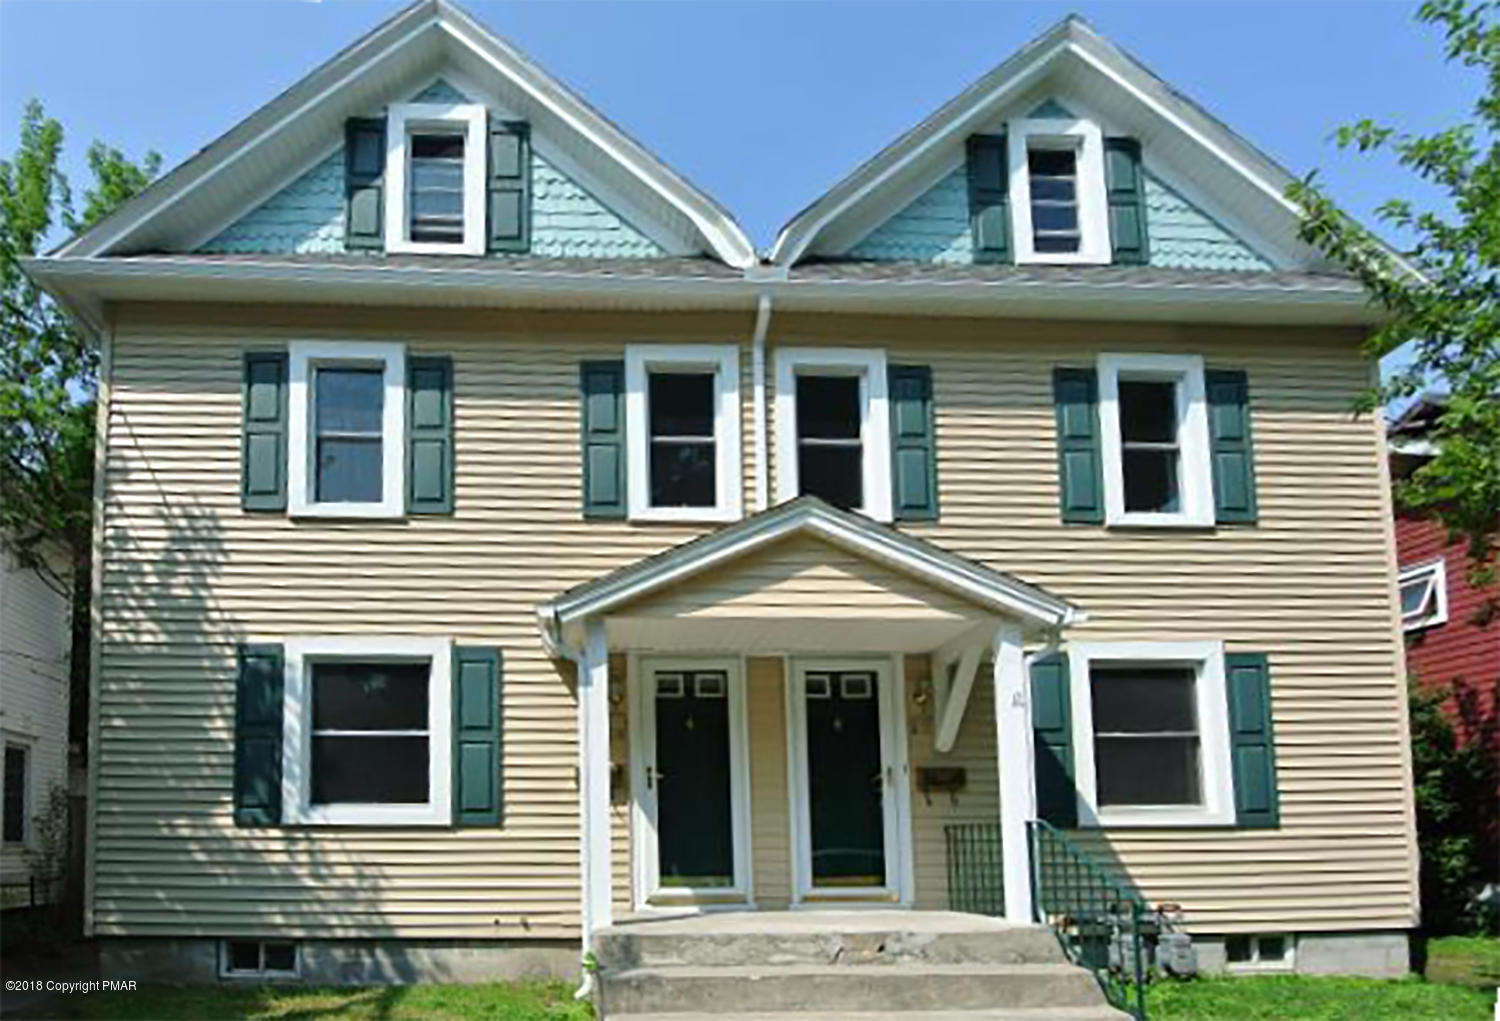 20 Best Apartments In Stroudsburg Pa With Pictures